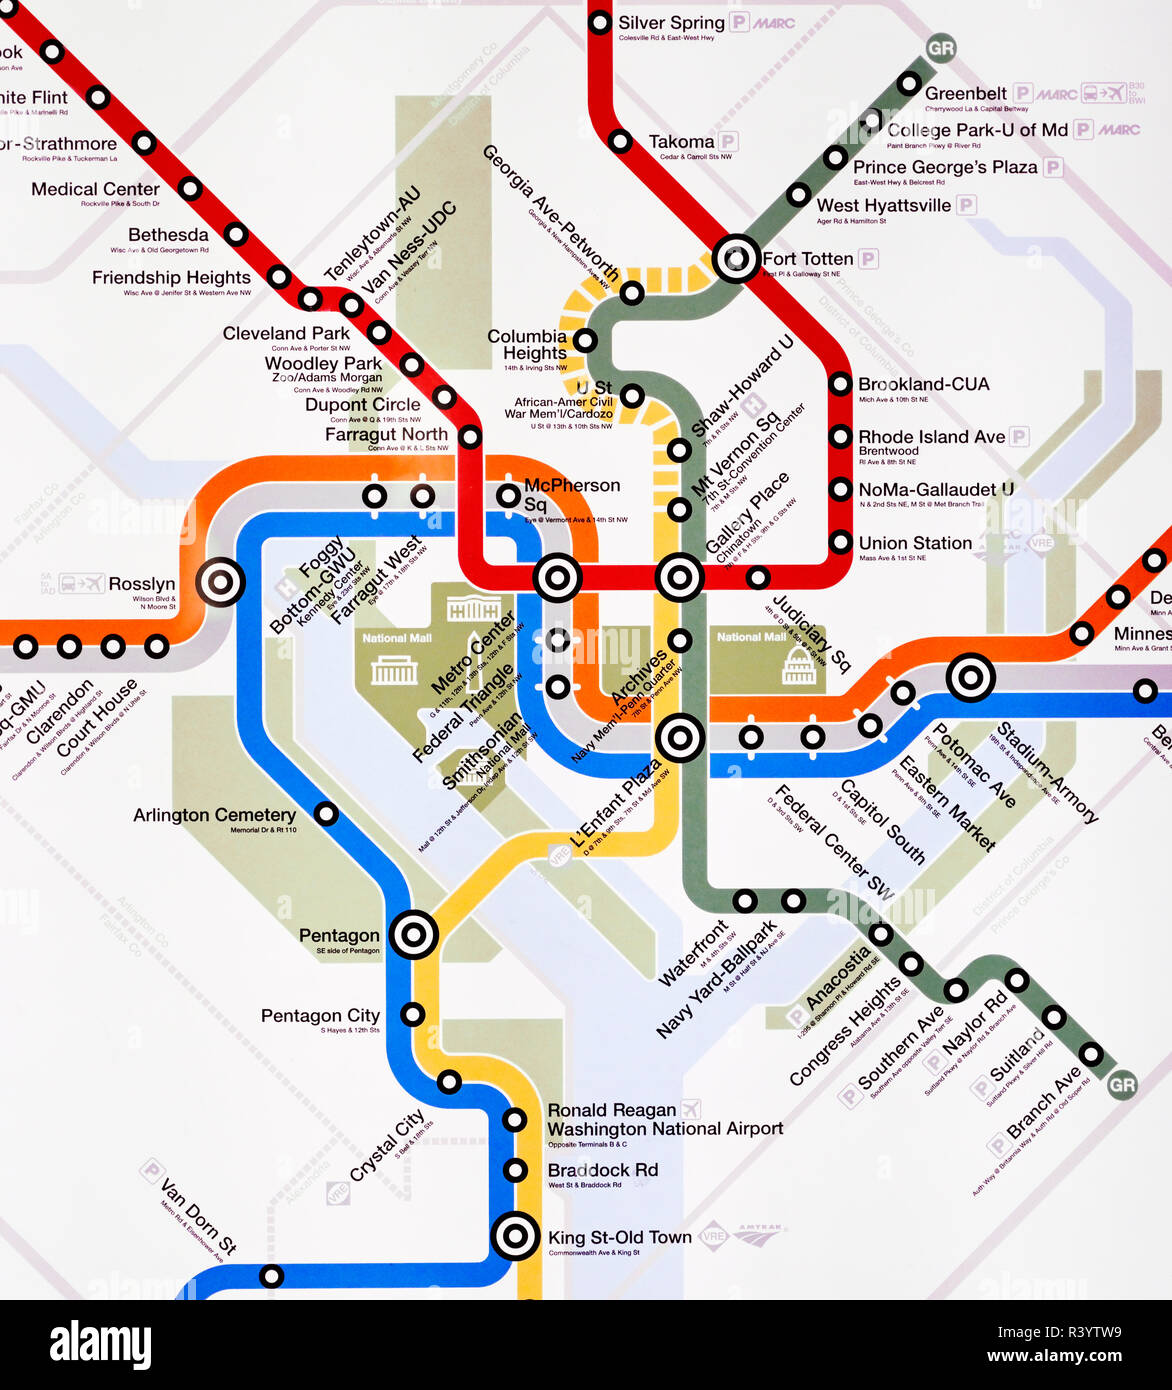 Washington Dc Subway Map Metro Stock Photo 226190981 Alamy